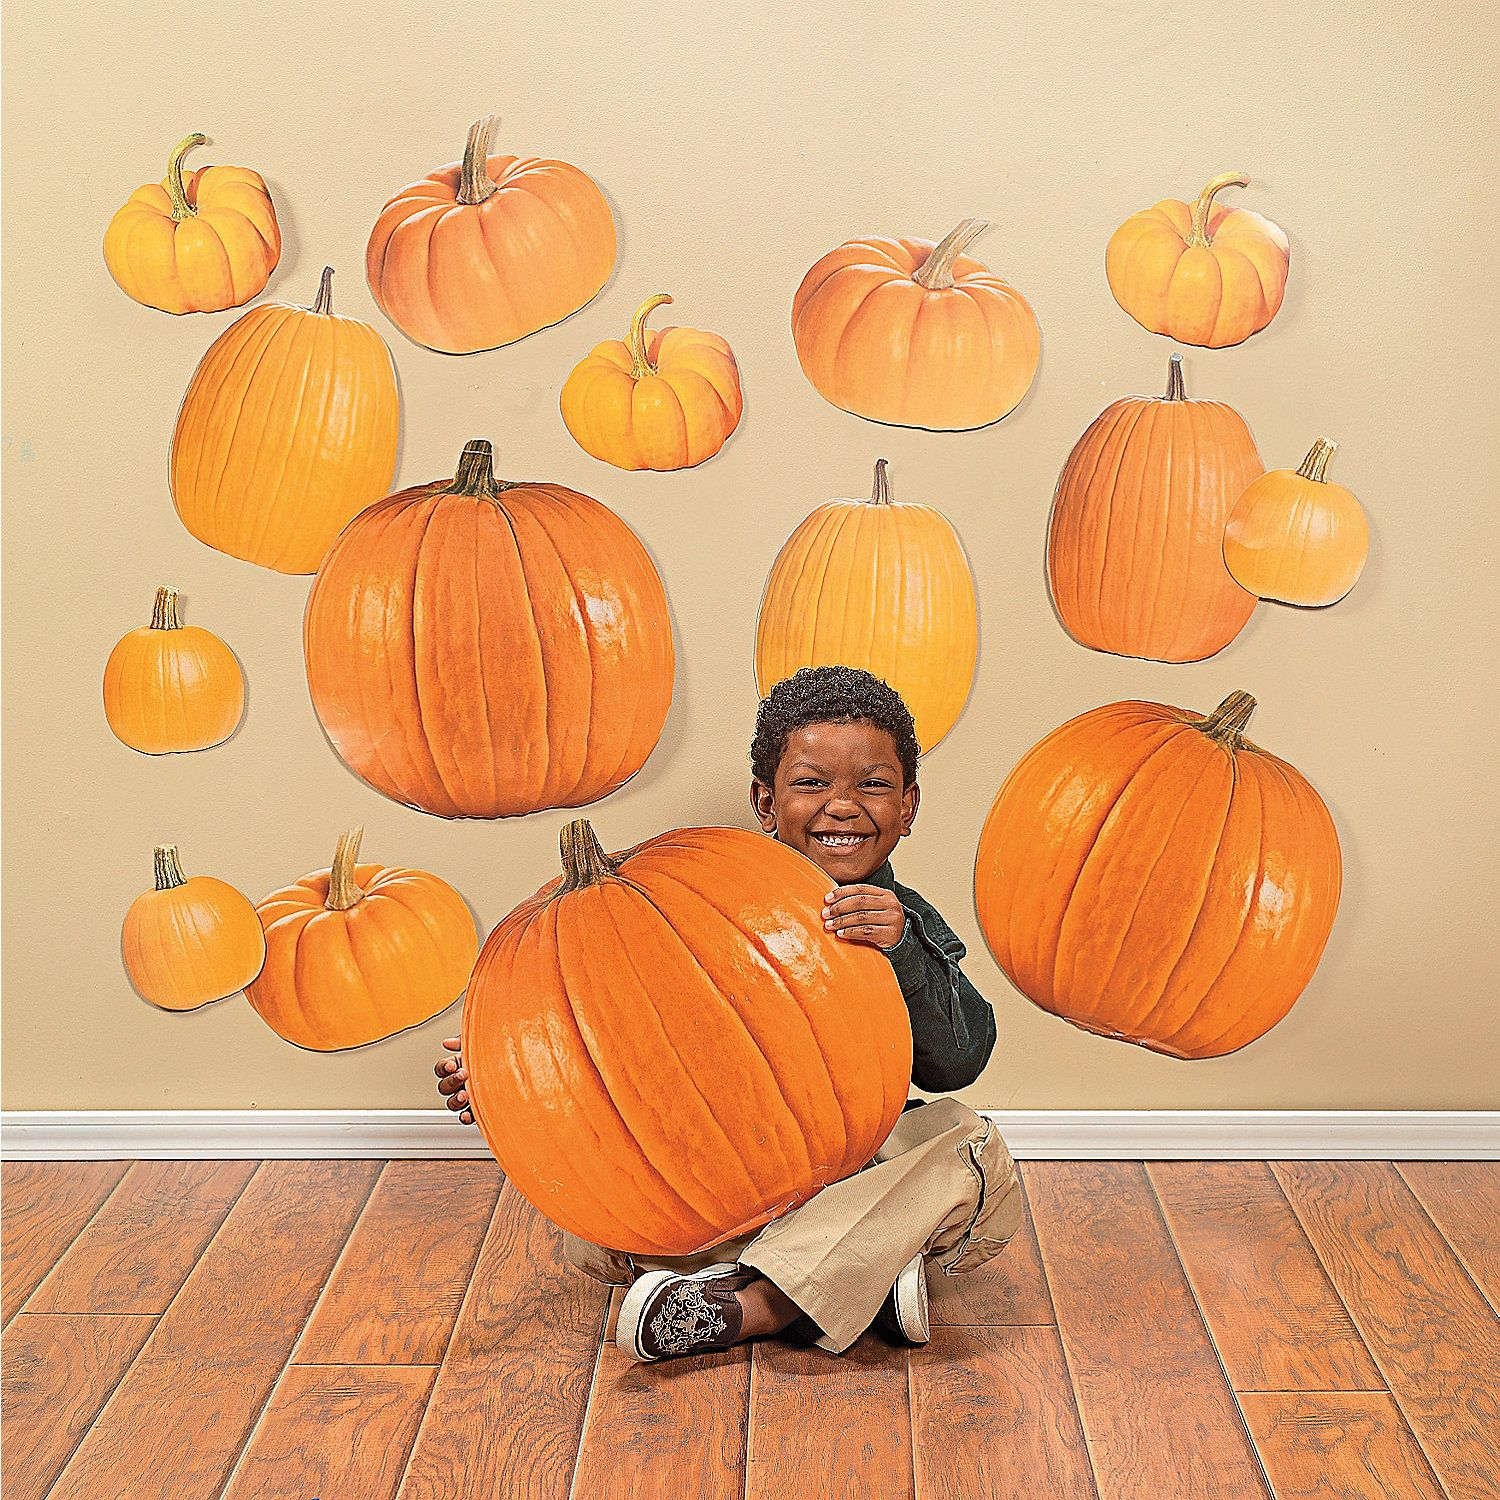 "These 50 Jumbo Pumpkin Classroom Cutouts are perfect for fall decorations. Use them to decorate at school, offices and other areas that need a fall feel! Our paper pumpkins come with real-life photography designs and 5 different sizes, 7 3/4"", 8"", 9 3/4"", 14"" and 17 3/8"". (10 pcs. per design, 50 pcs. per unit)© OTC"